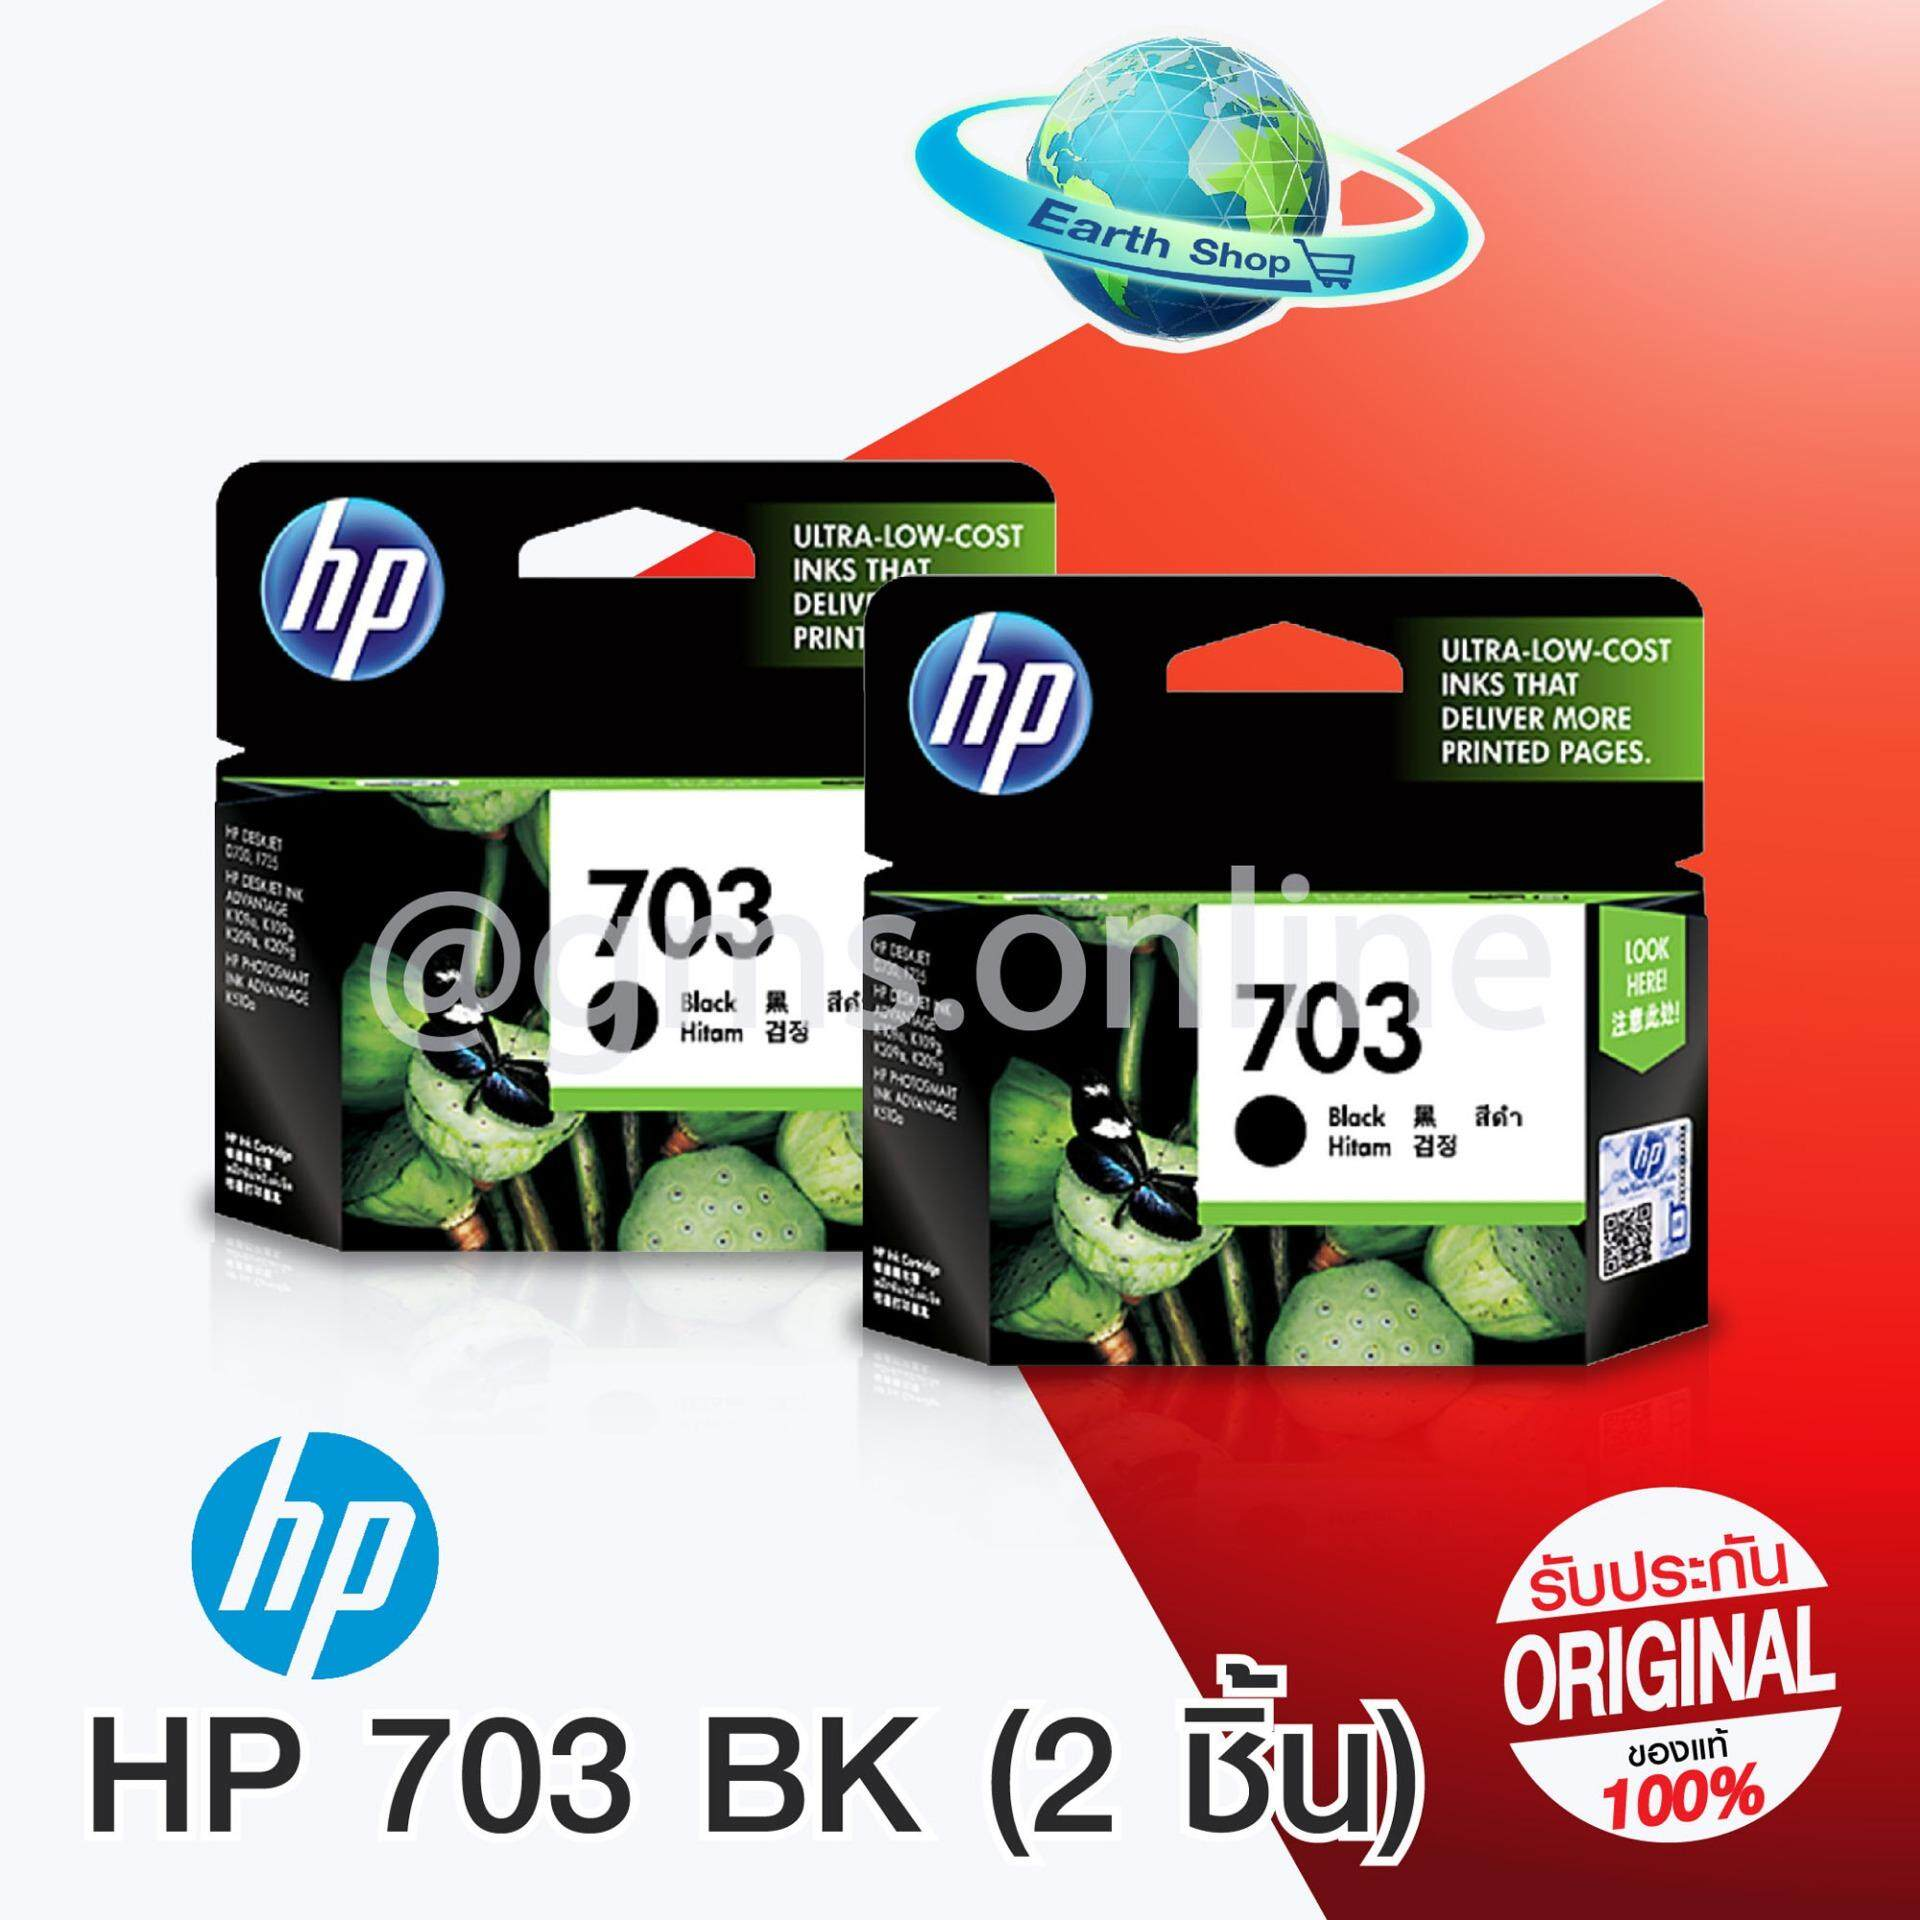 HP 703 BK INK CD887AA (2 ชิ้น)HP DESKJETD730,F735 HP DESKJET INK ADVANTAGE K109a,K109g,K209a,K209g HP PHOTOSMART INK ADVANTAGE K510a